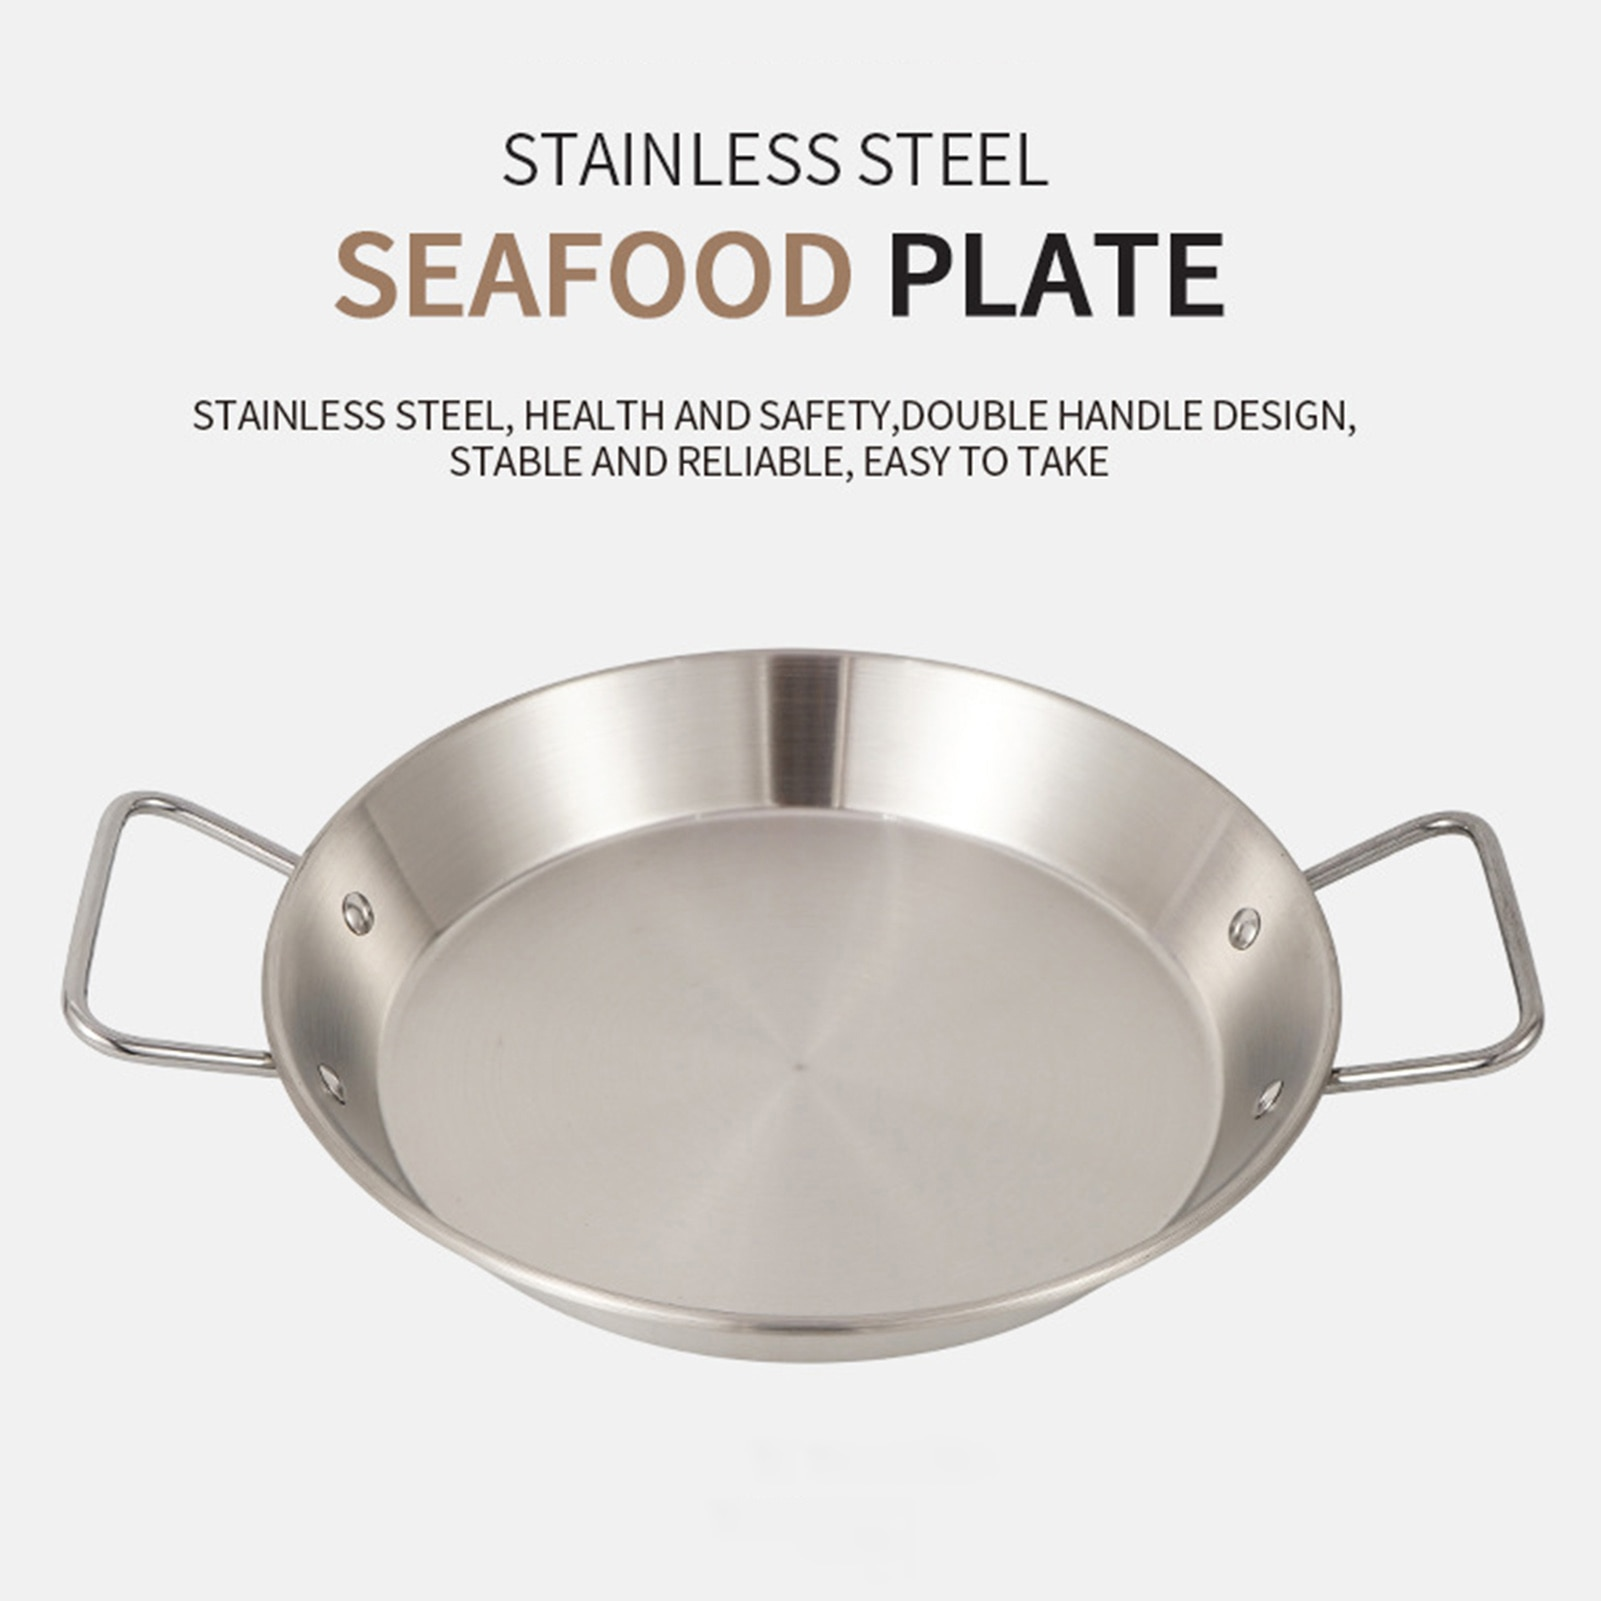 Nonstick Frying Pan Stainless Steel Fry Skillet With Side Handles Outdoor Binaural Camping Barbecue Pot Camping Cookware